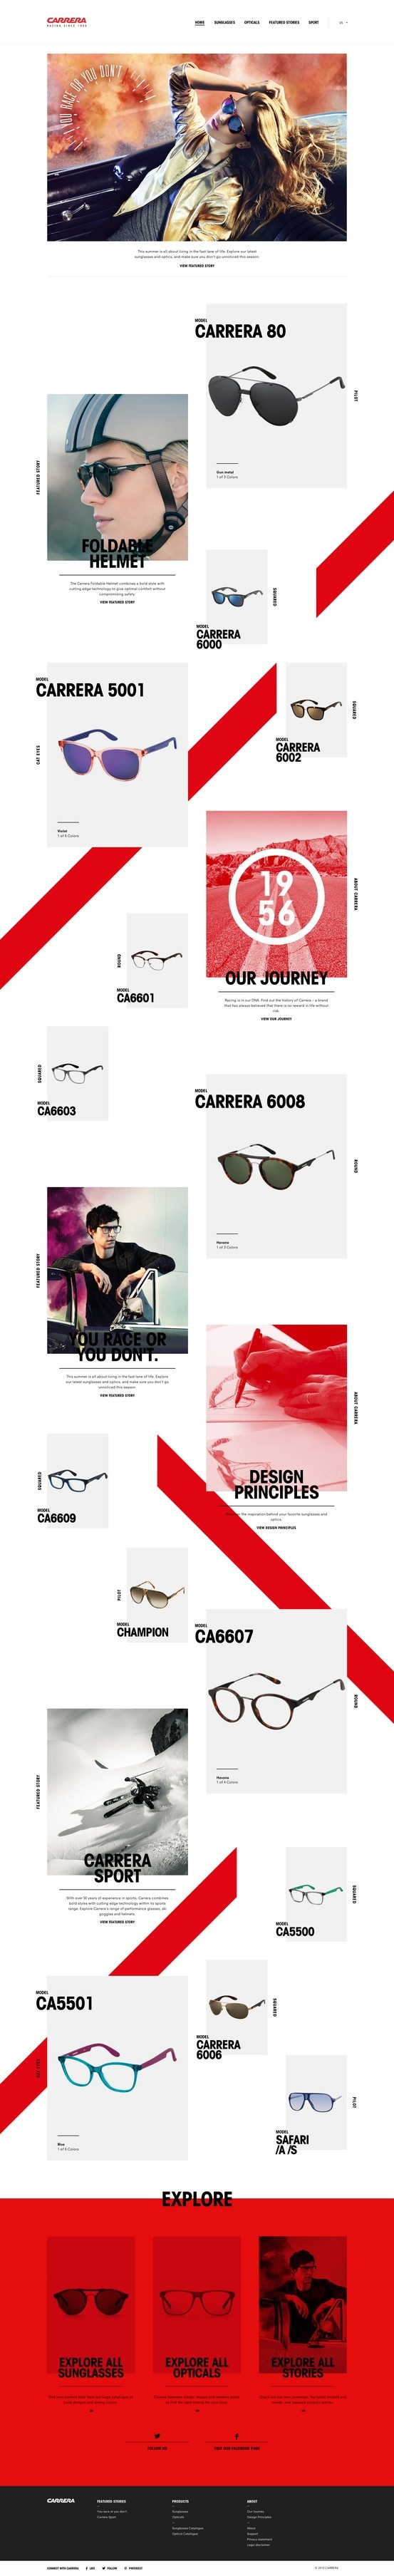 #eCommerce #websitedesign #webdesign #sunglasses #glasses #accessories http://carreraworld.com